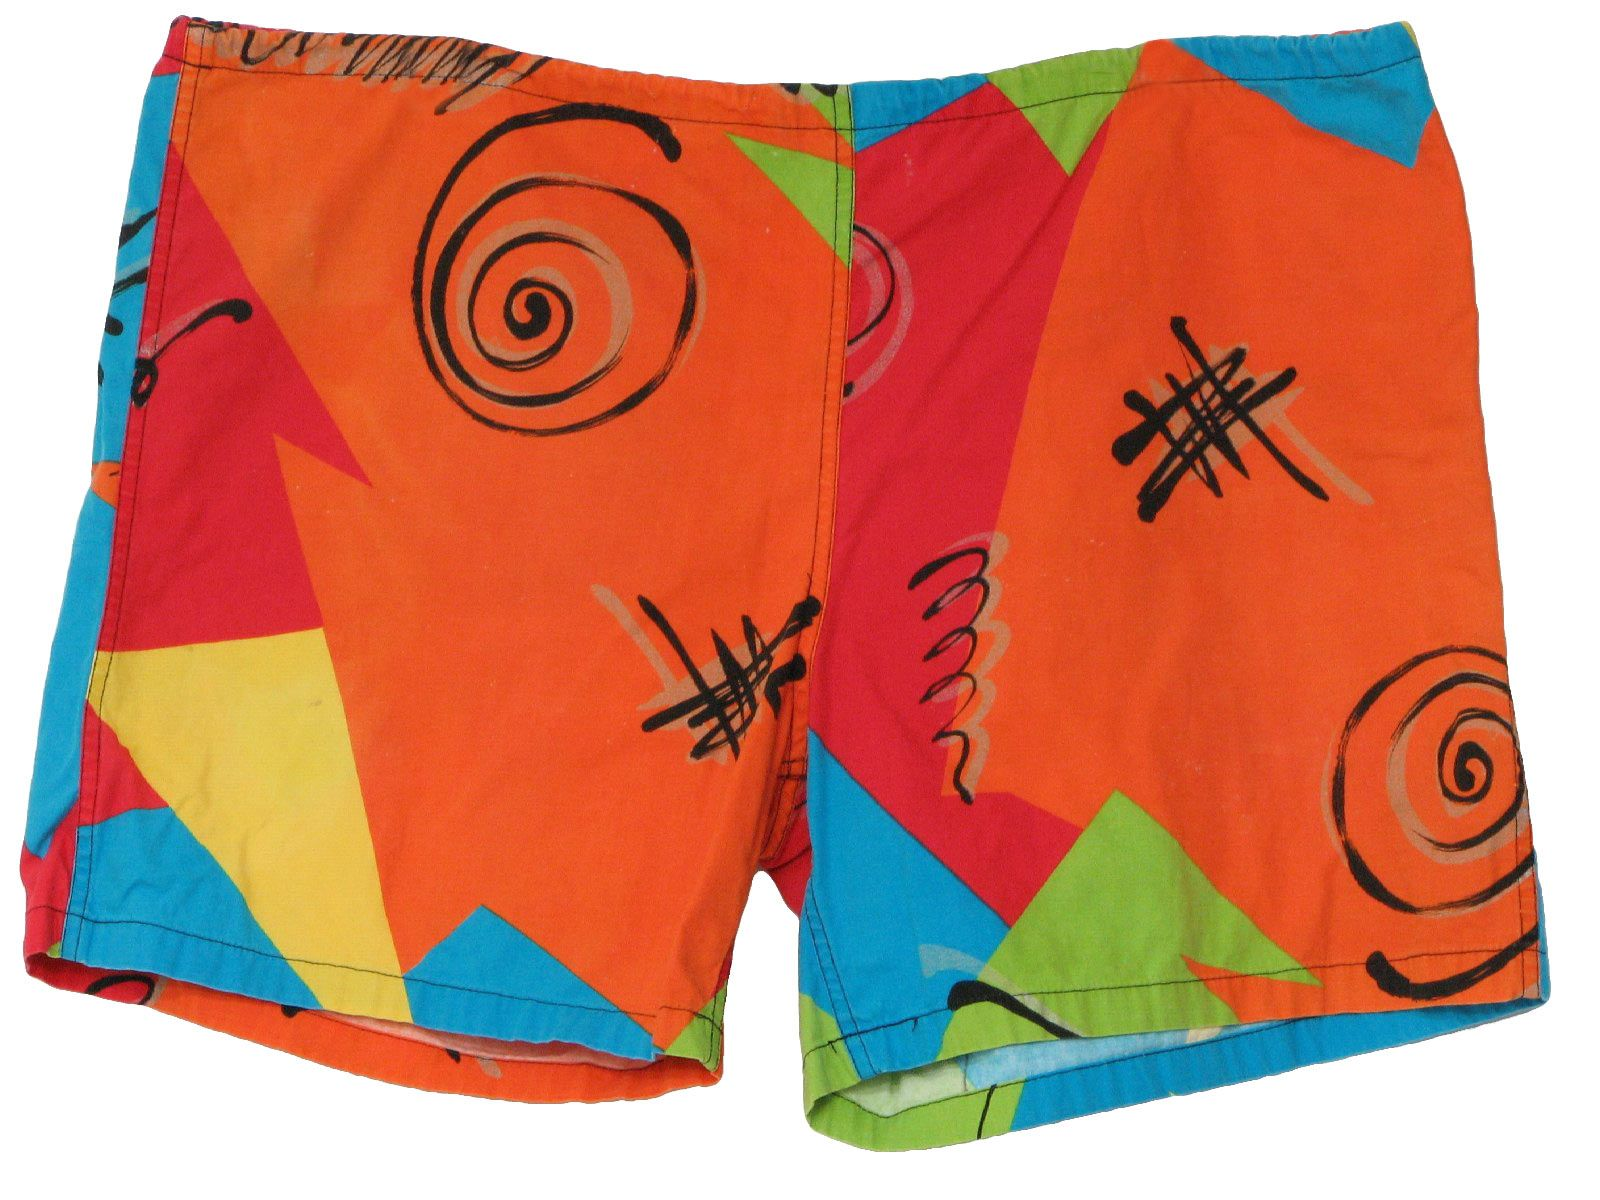 4e7846d60eac3 80s -Surf Line Original Jams- Mens orange, red, peacock blue, black,  yellow, acid green, metallic gold, wild color shapes with squiggles and  spirals print, ...